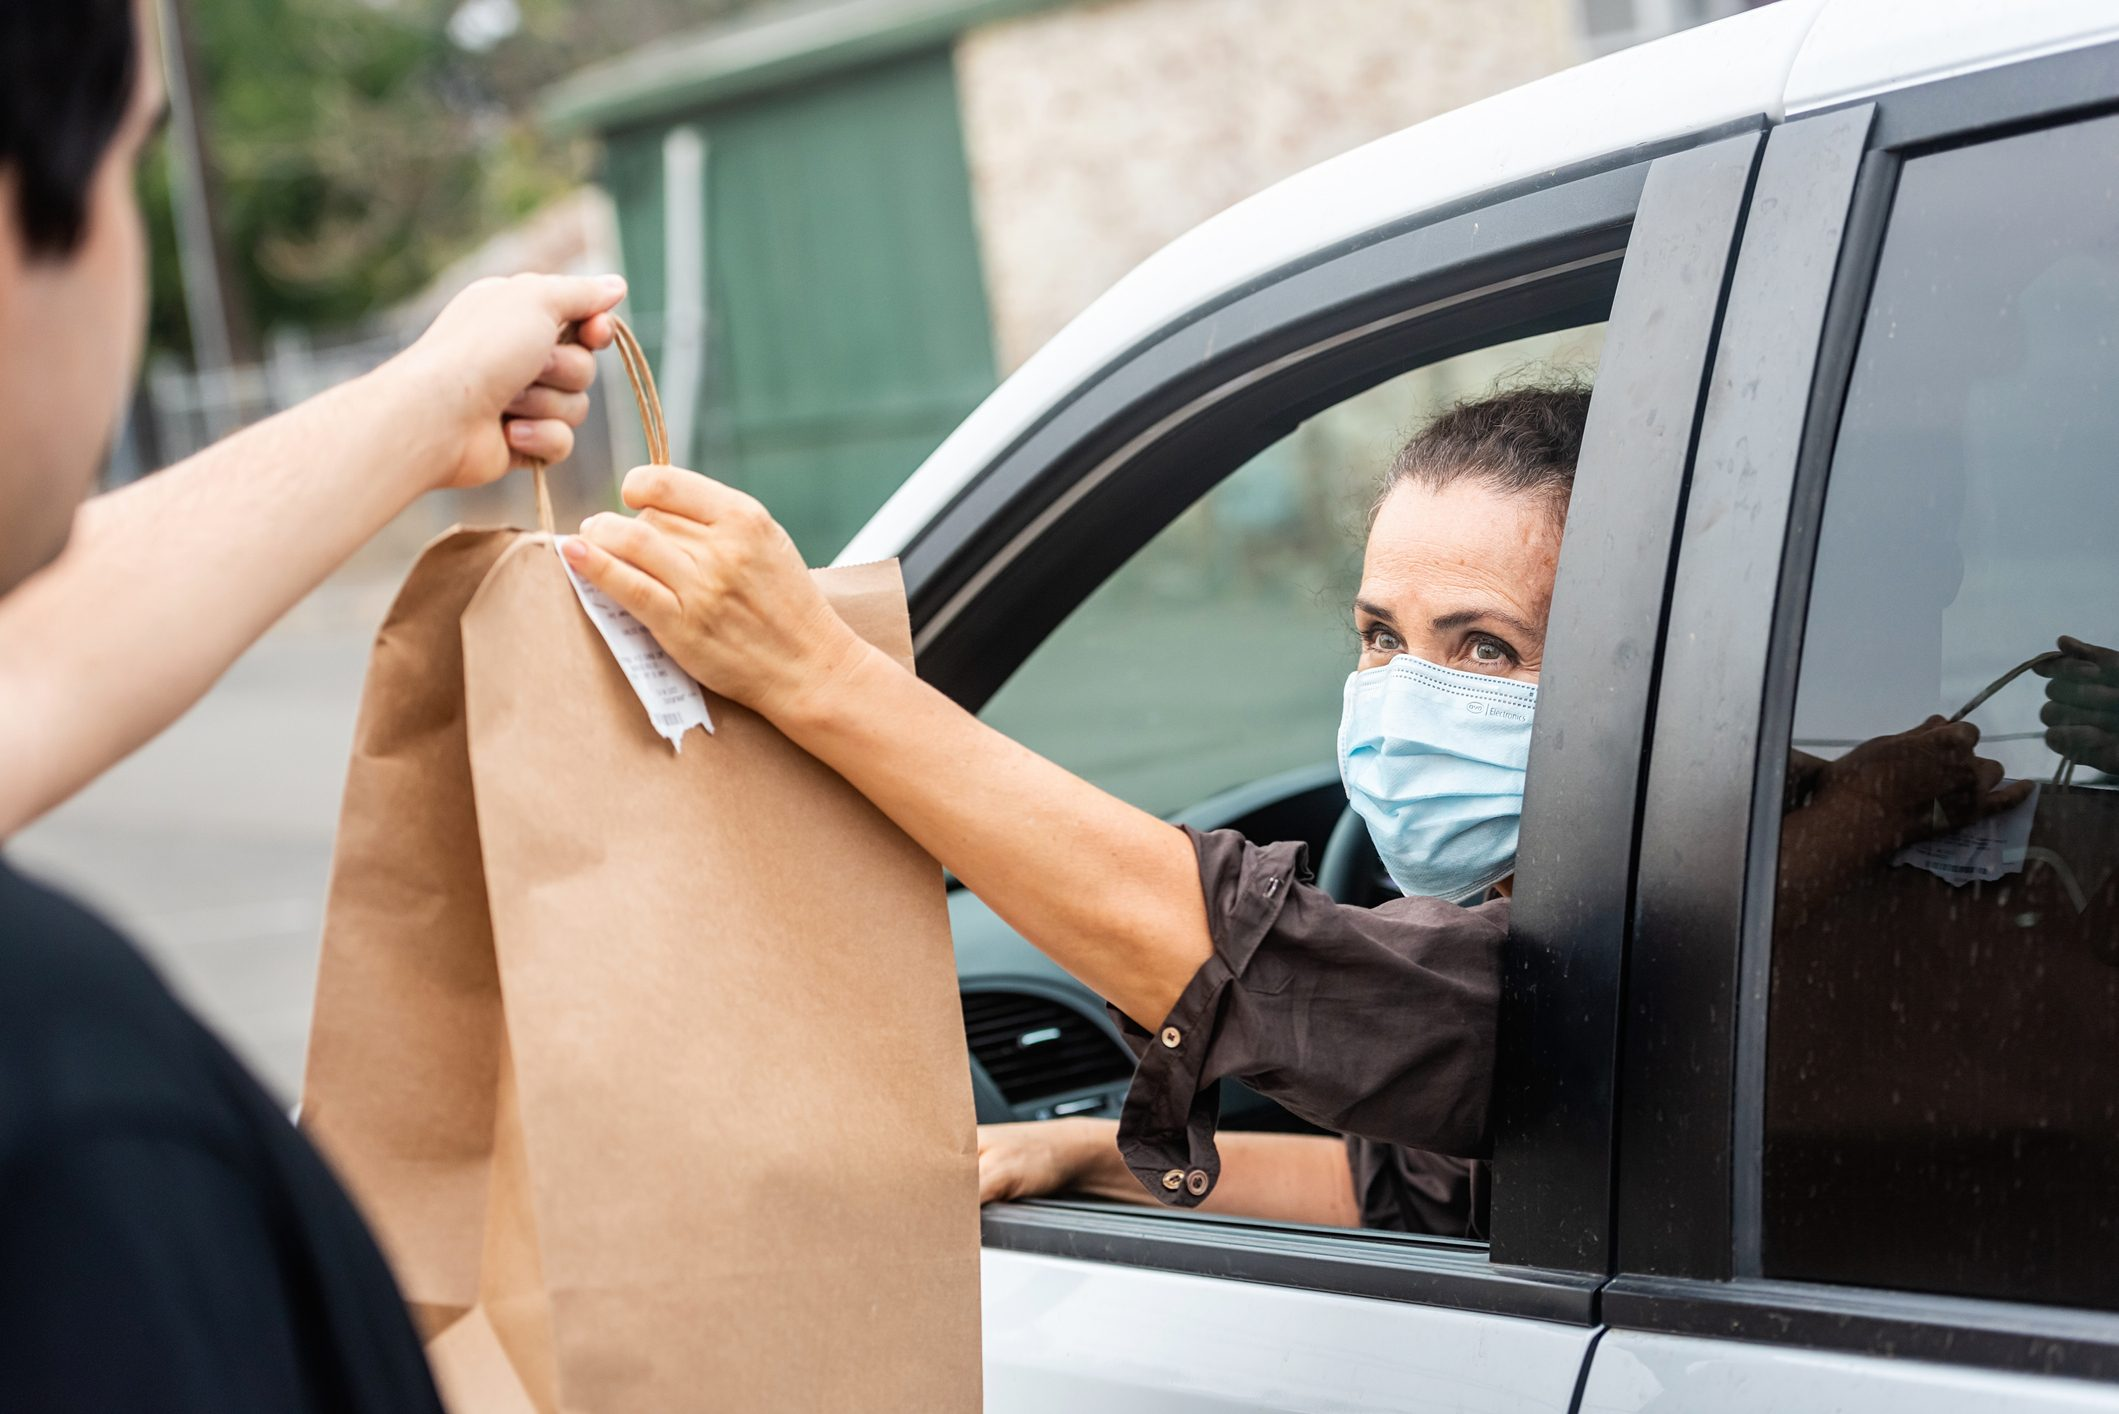 Mature woman picking her to go order from her car at a Curbside pickup